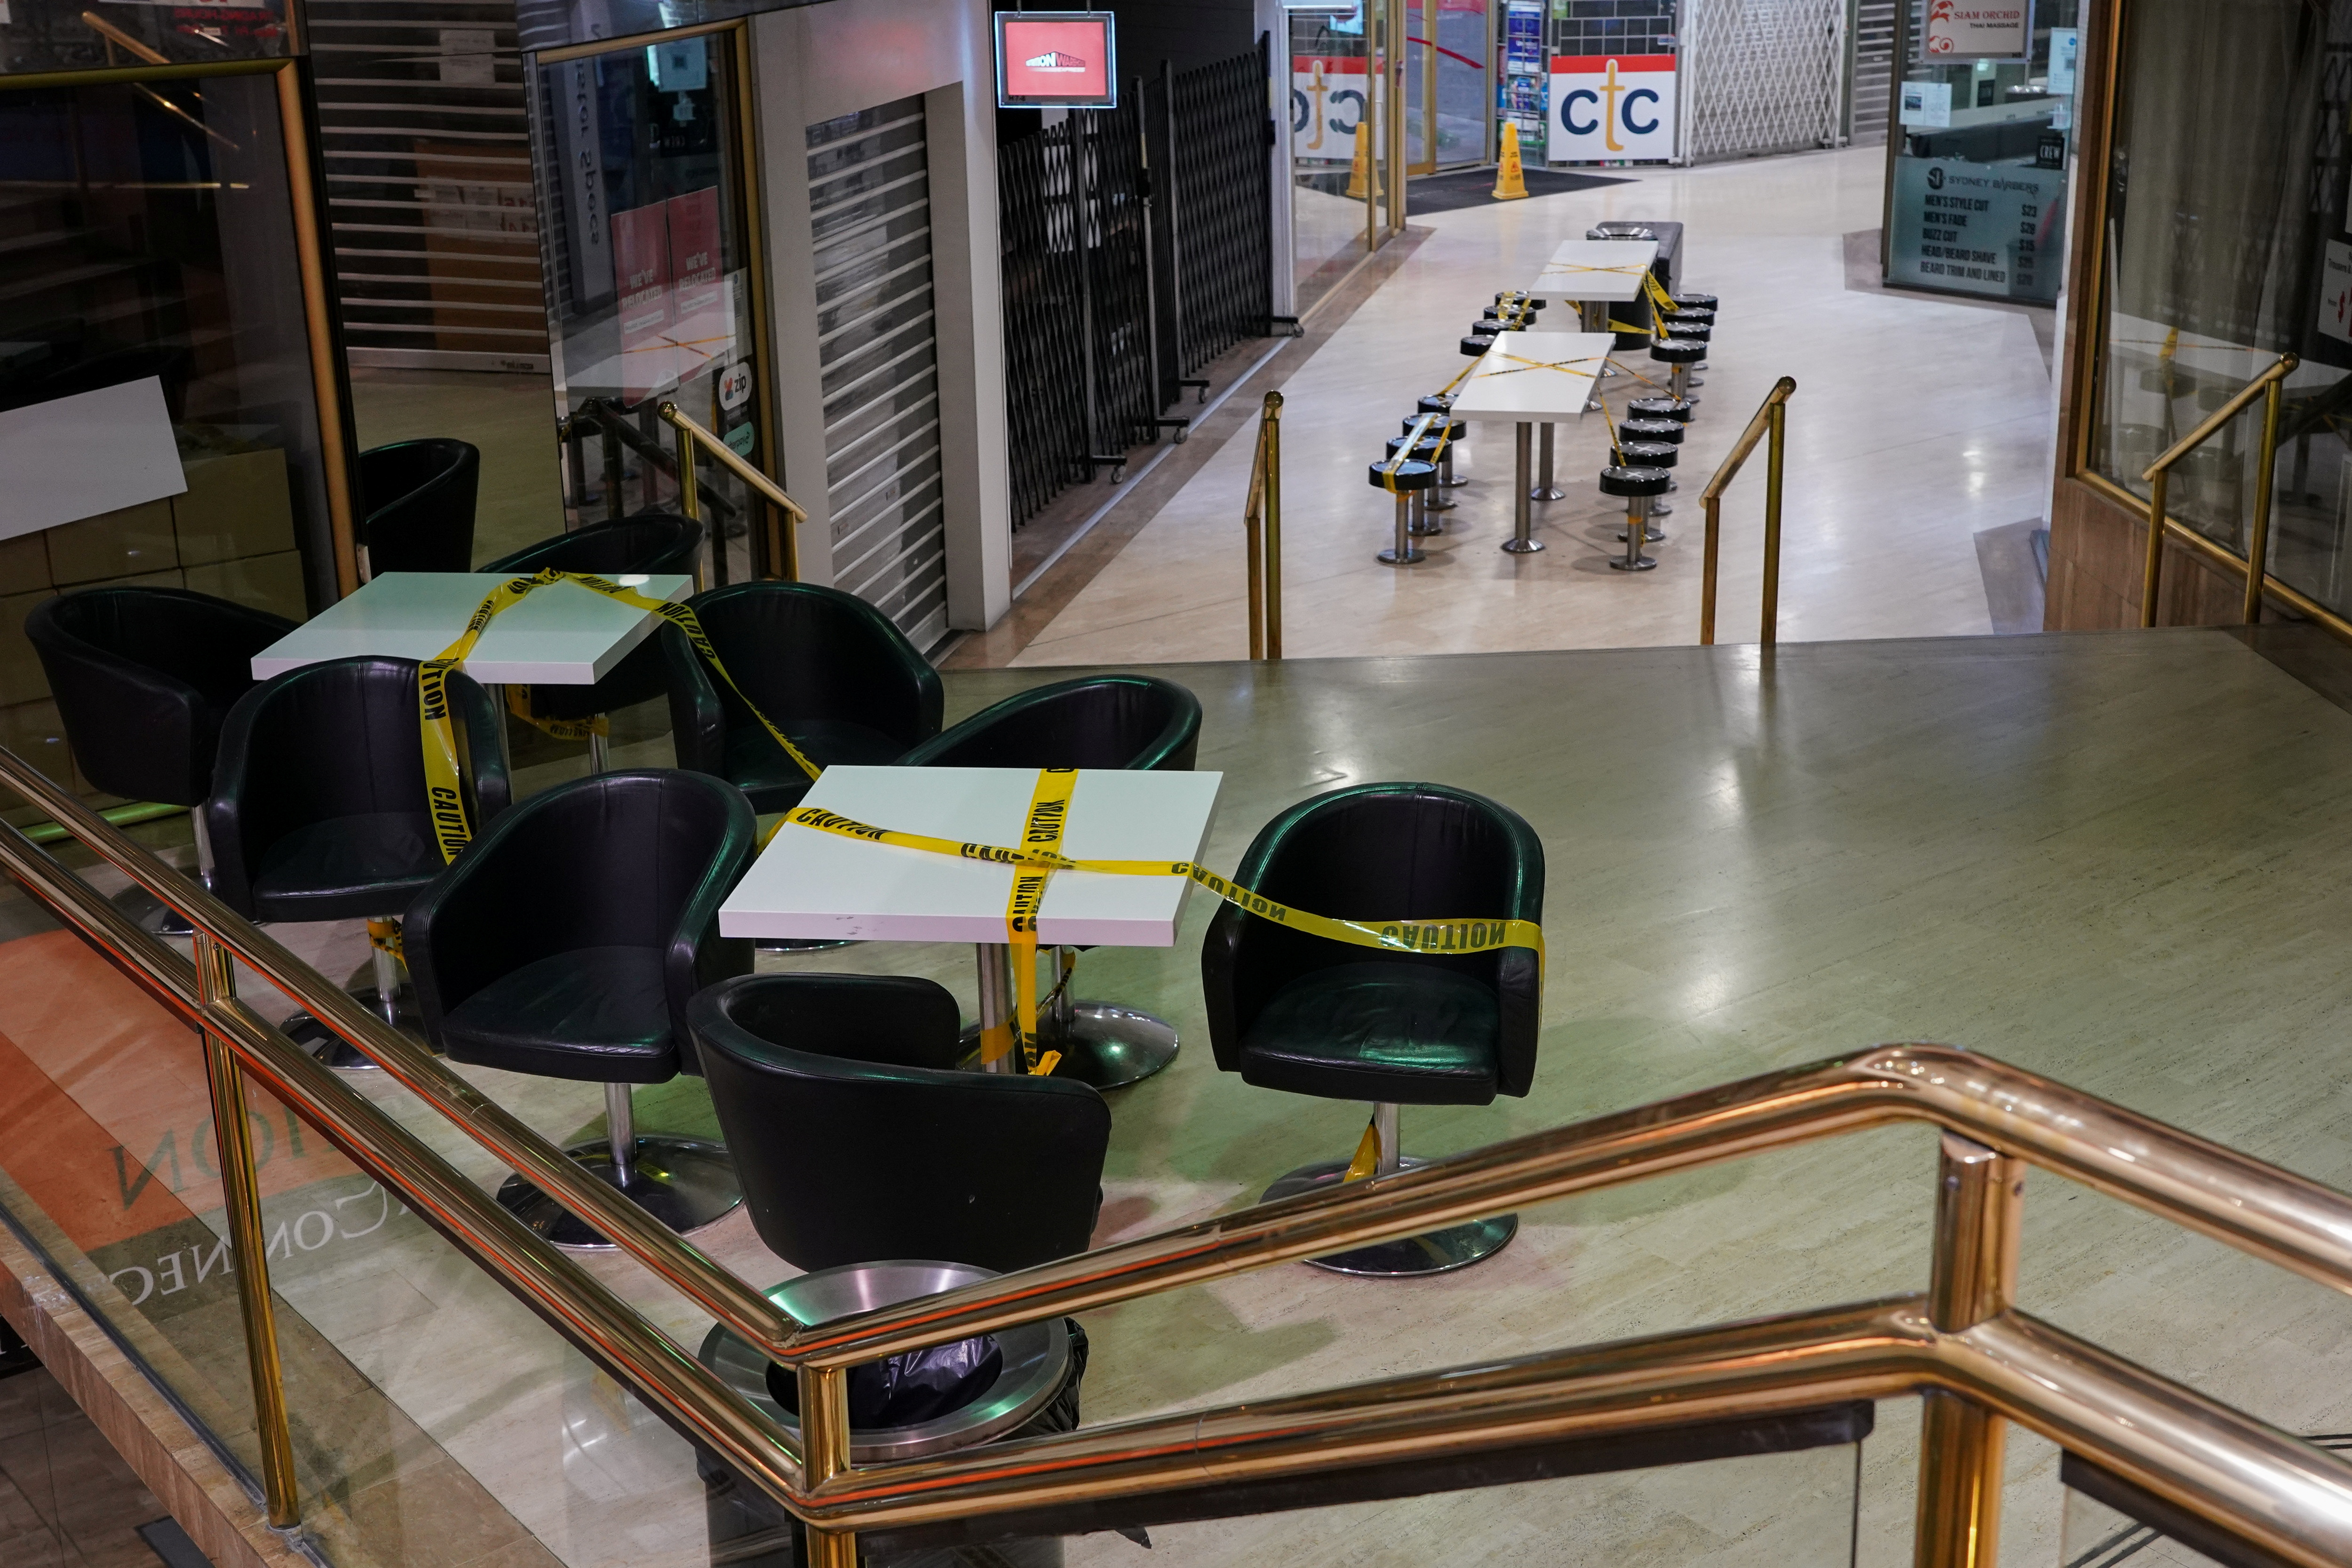 Tables marked with caution tape to prevent people from sitting are seen in an empty city centre mall during a lockdown to curb the spread of a coronavirus disease (COVID-19) outbreak in Sydney, Australia, July 28, 2021.  REUTERS/Loren Elliott